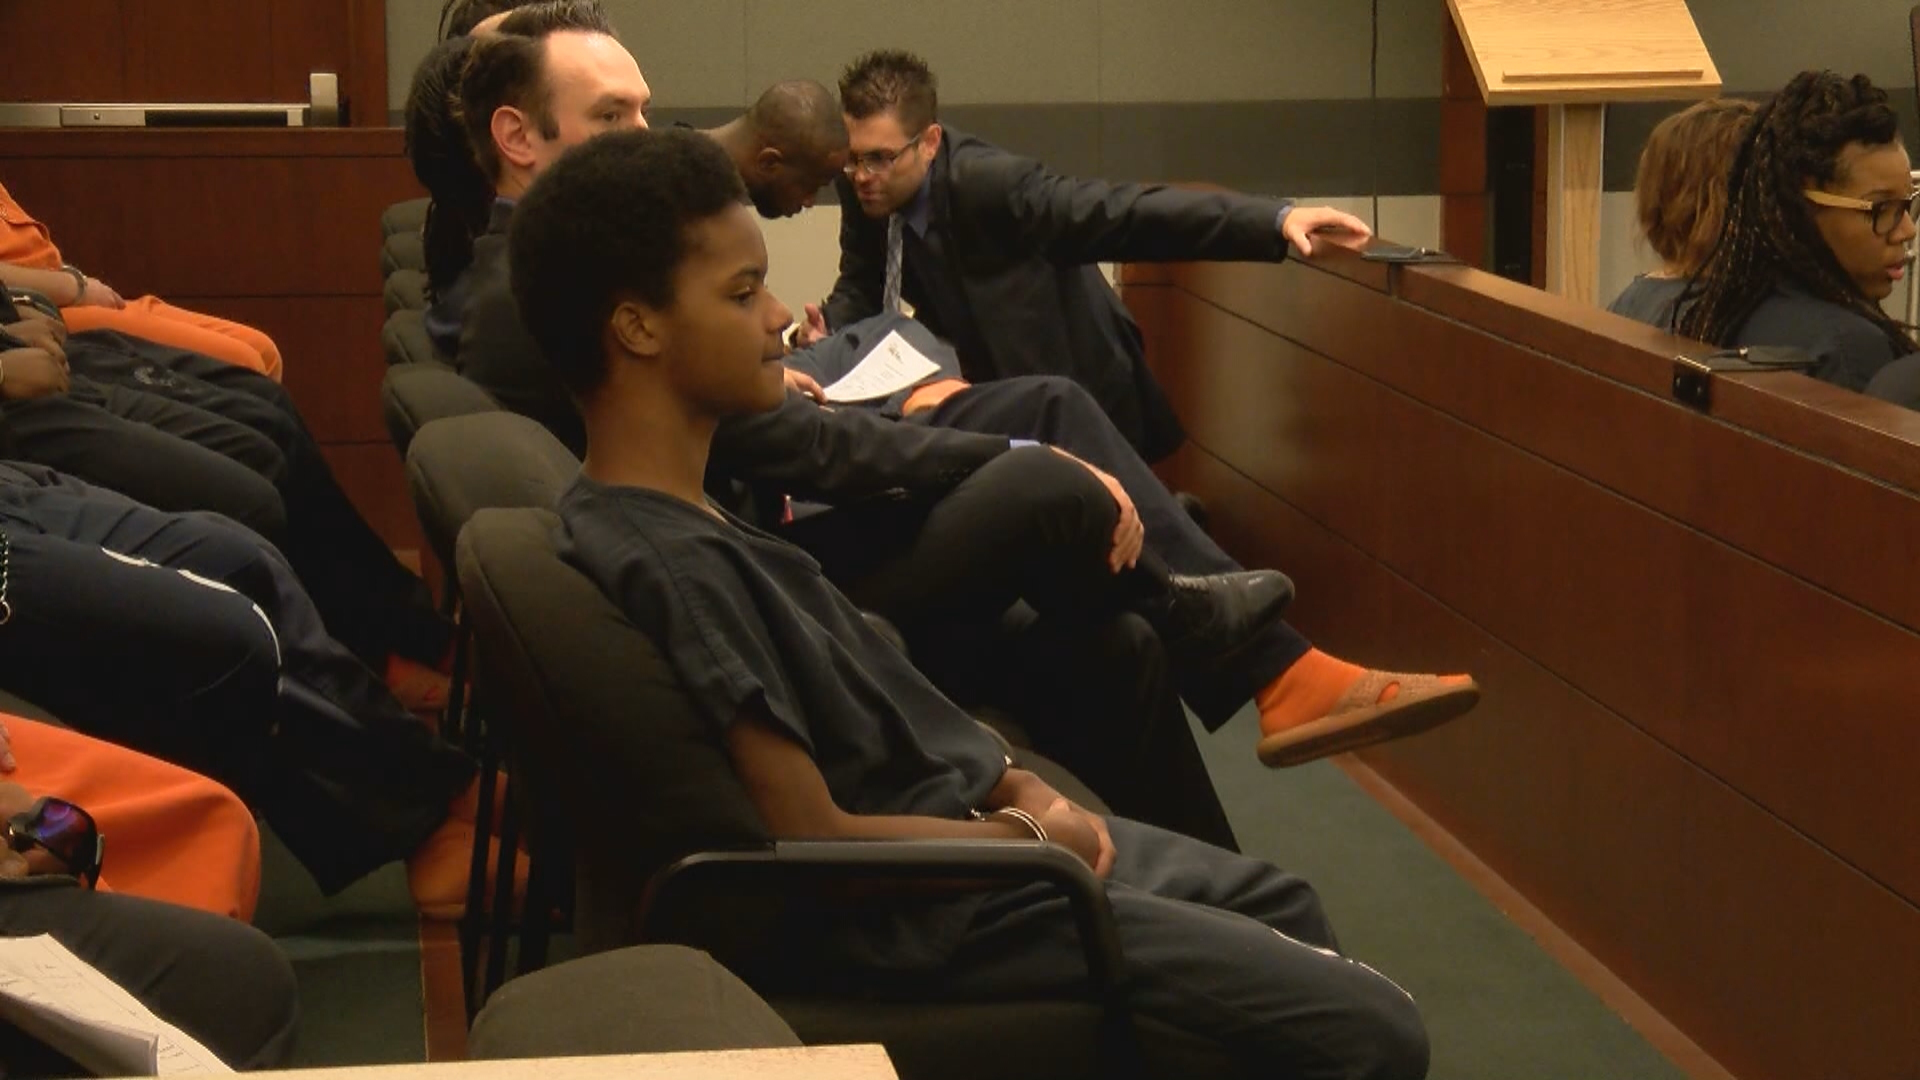 Royal Love-Camp, 17, appears in court Tuesday, July 18, 2017, at the Regional Justice Center in Las Vegas. (Bradford Boyer/KSNV)